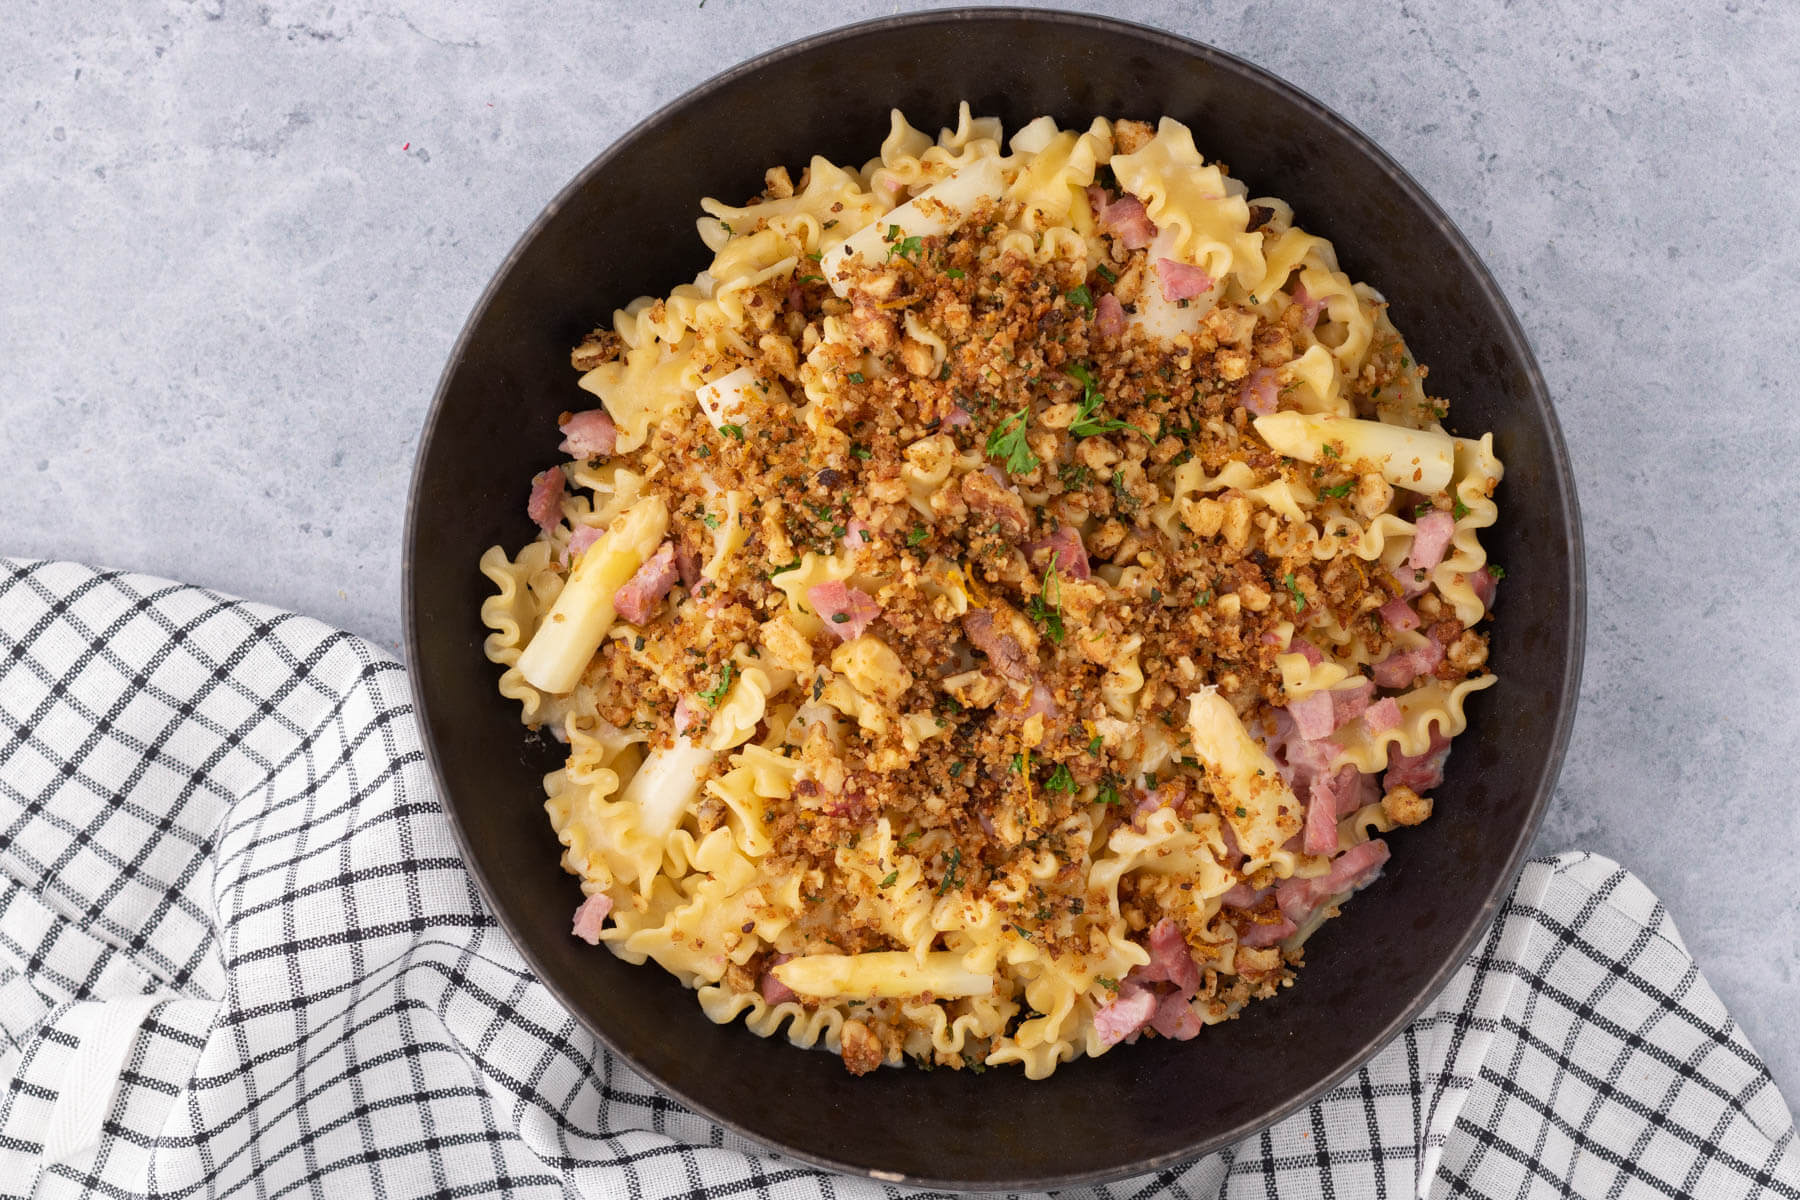 A bowl of lemon butter pasta with ham and white asparagus topped with golden herbed bread crumbs.